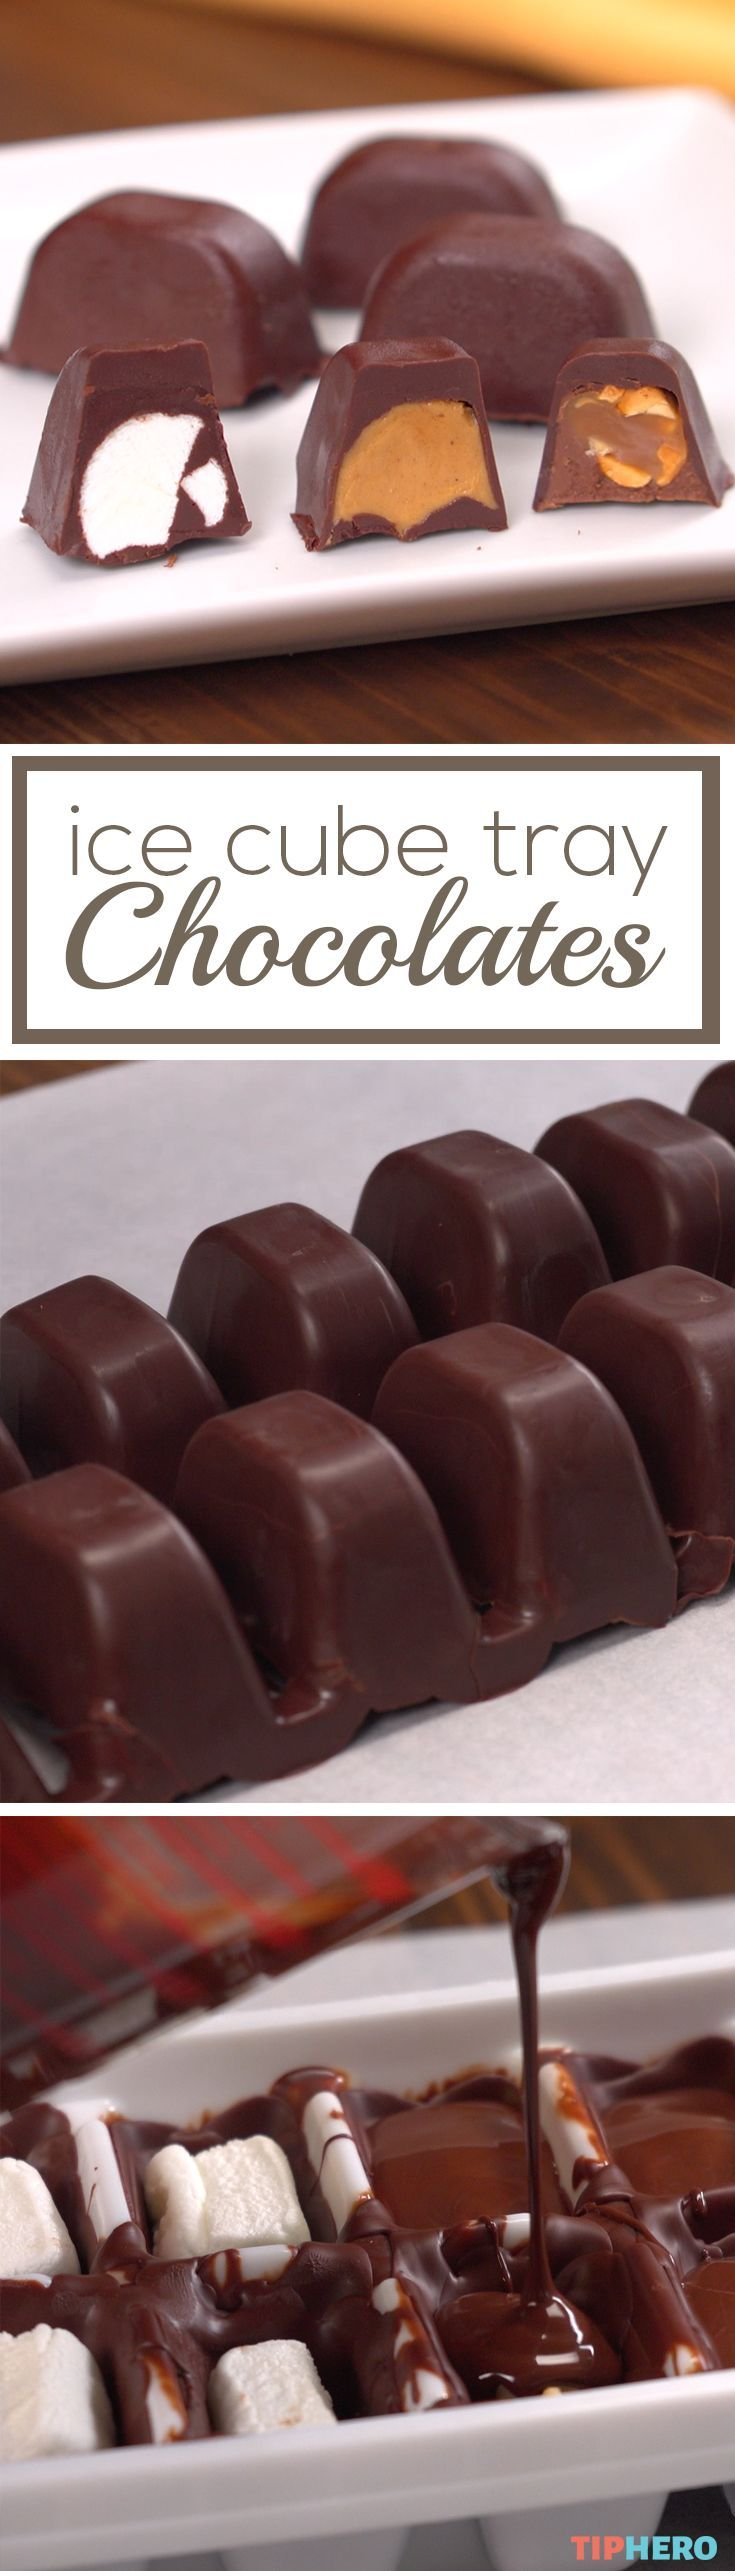 17 Best images about Chocolate Fever on Pinterest | Dark ...